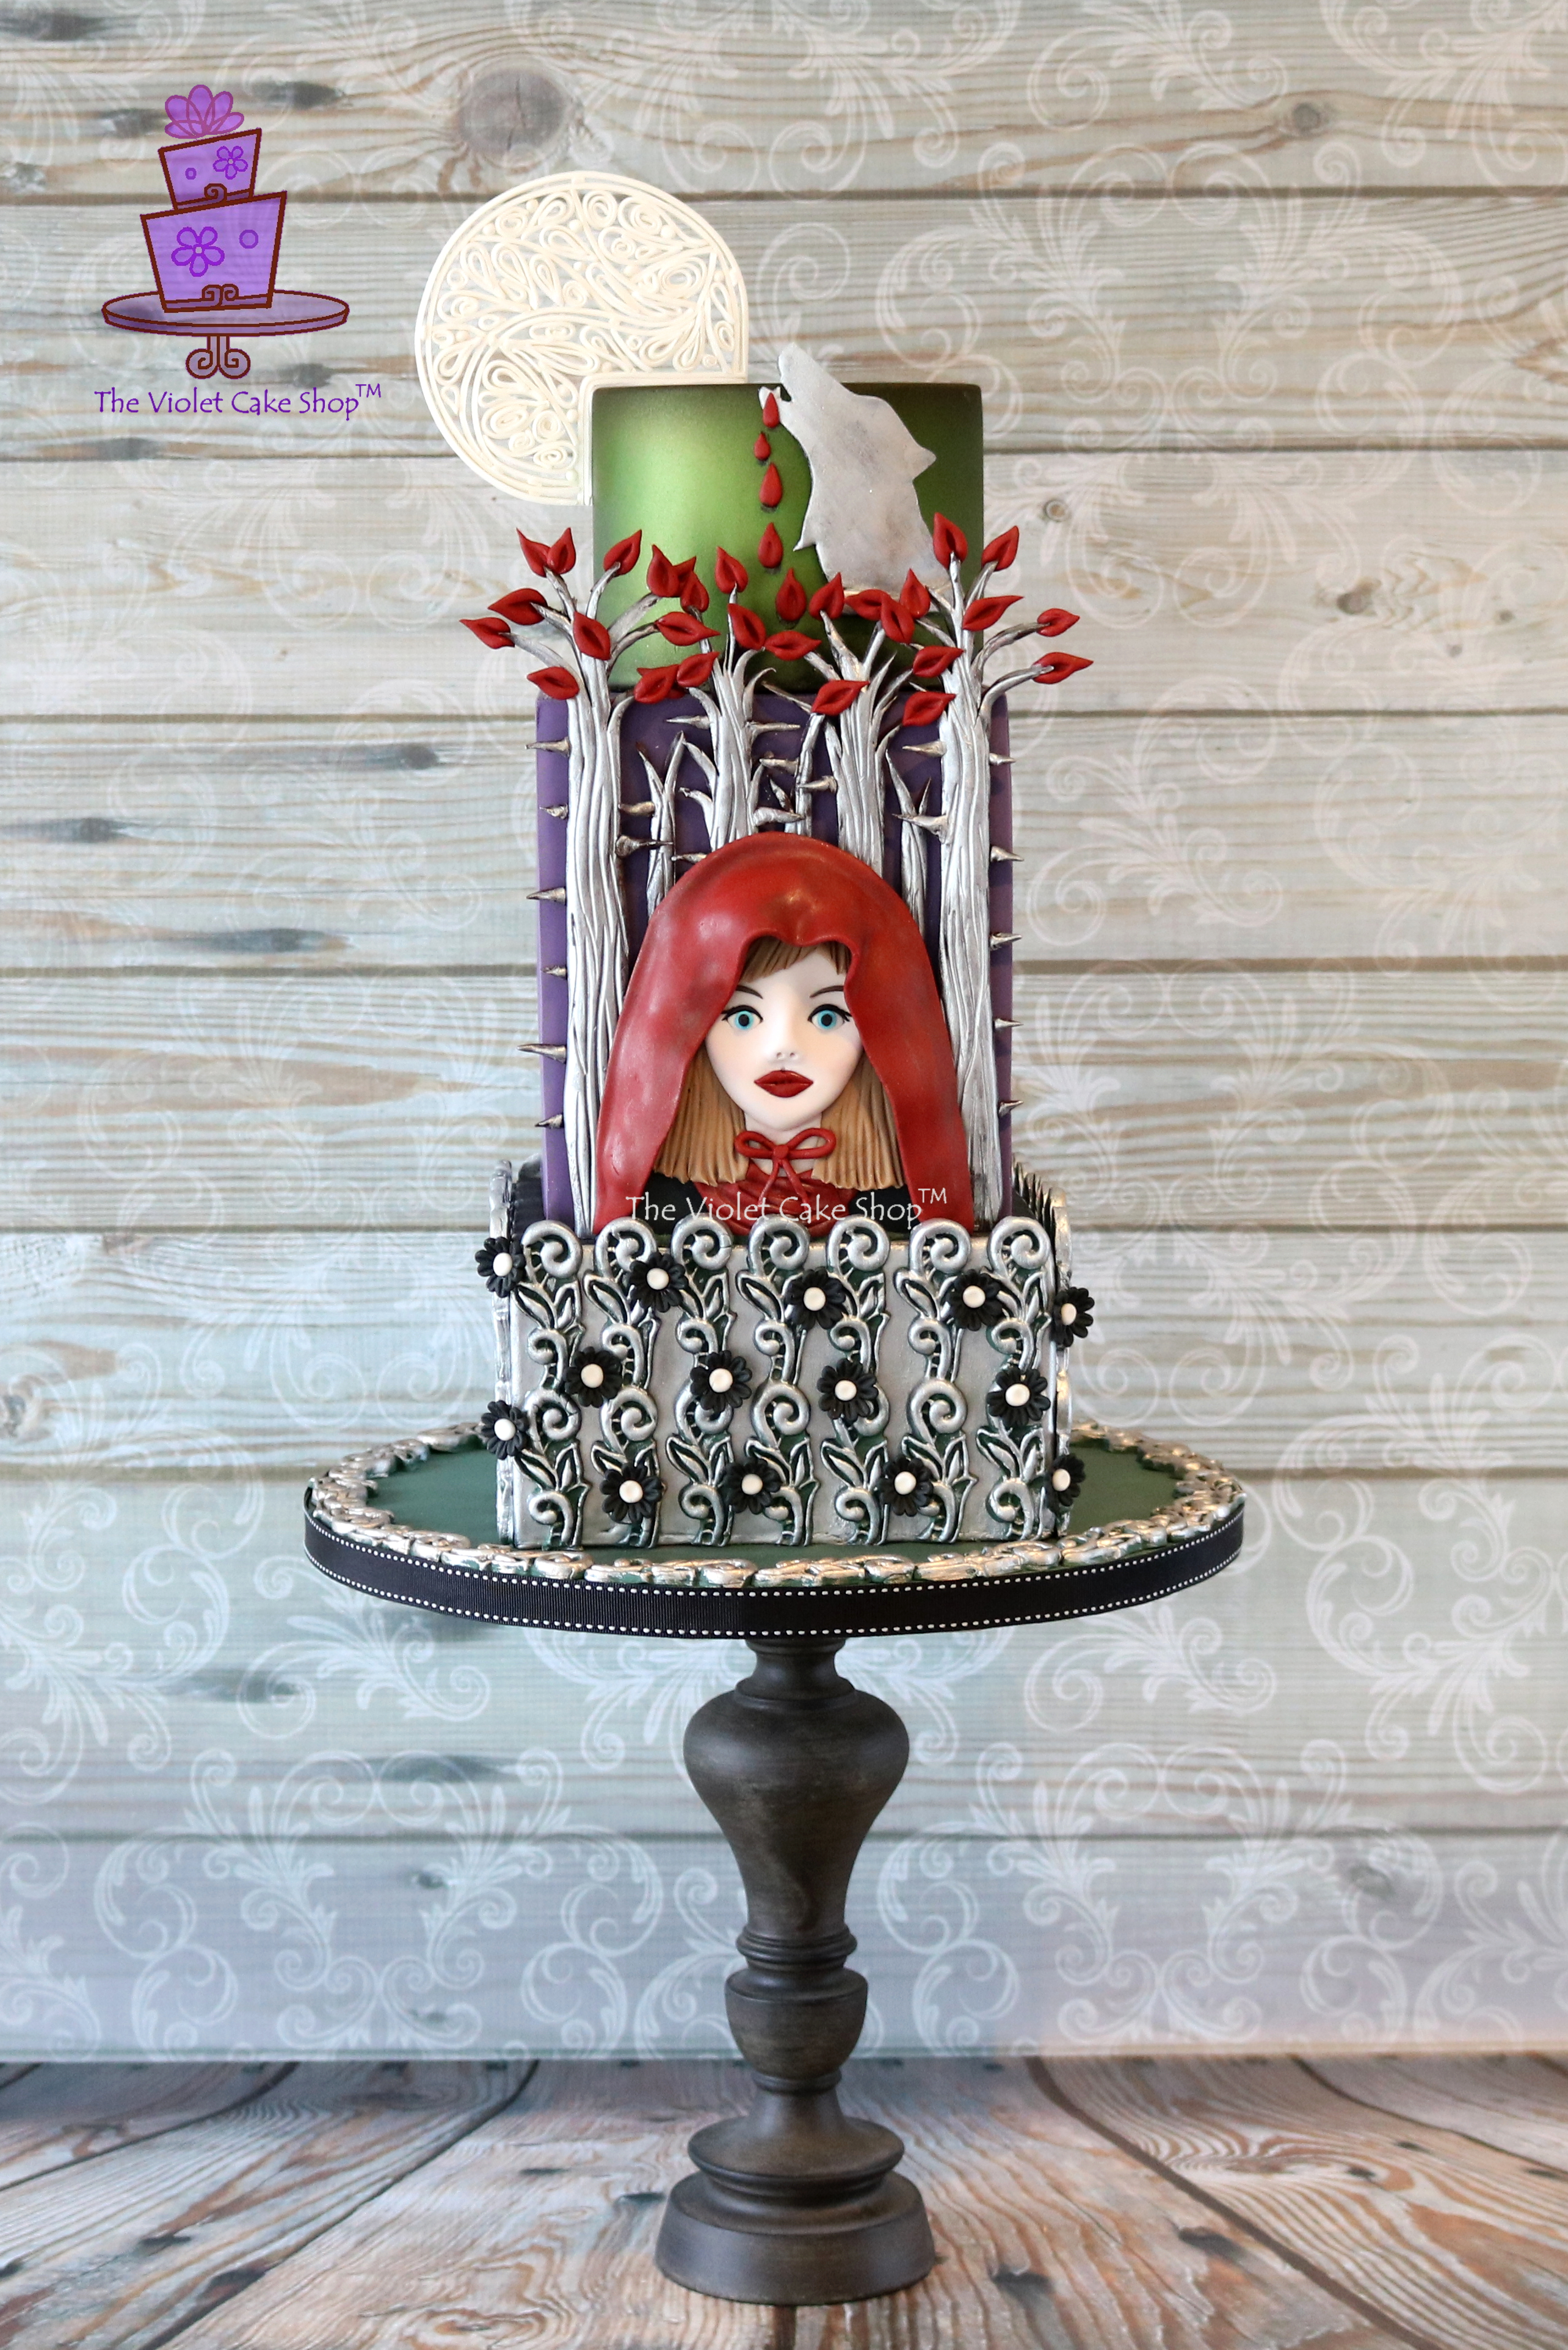 Tell-A-Fairy-Tale-The-Violet-Cake-Shop-Dark-Side-of-Red-SFT-Collab-IMG_7454-iii-wm-cropped.JPG#asset:15345